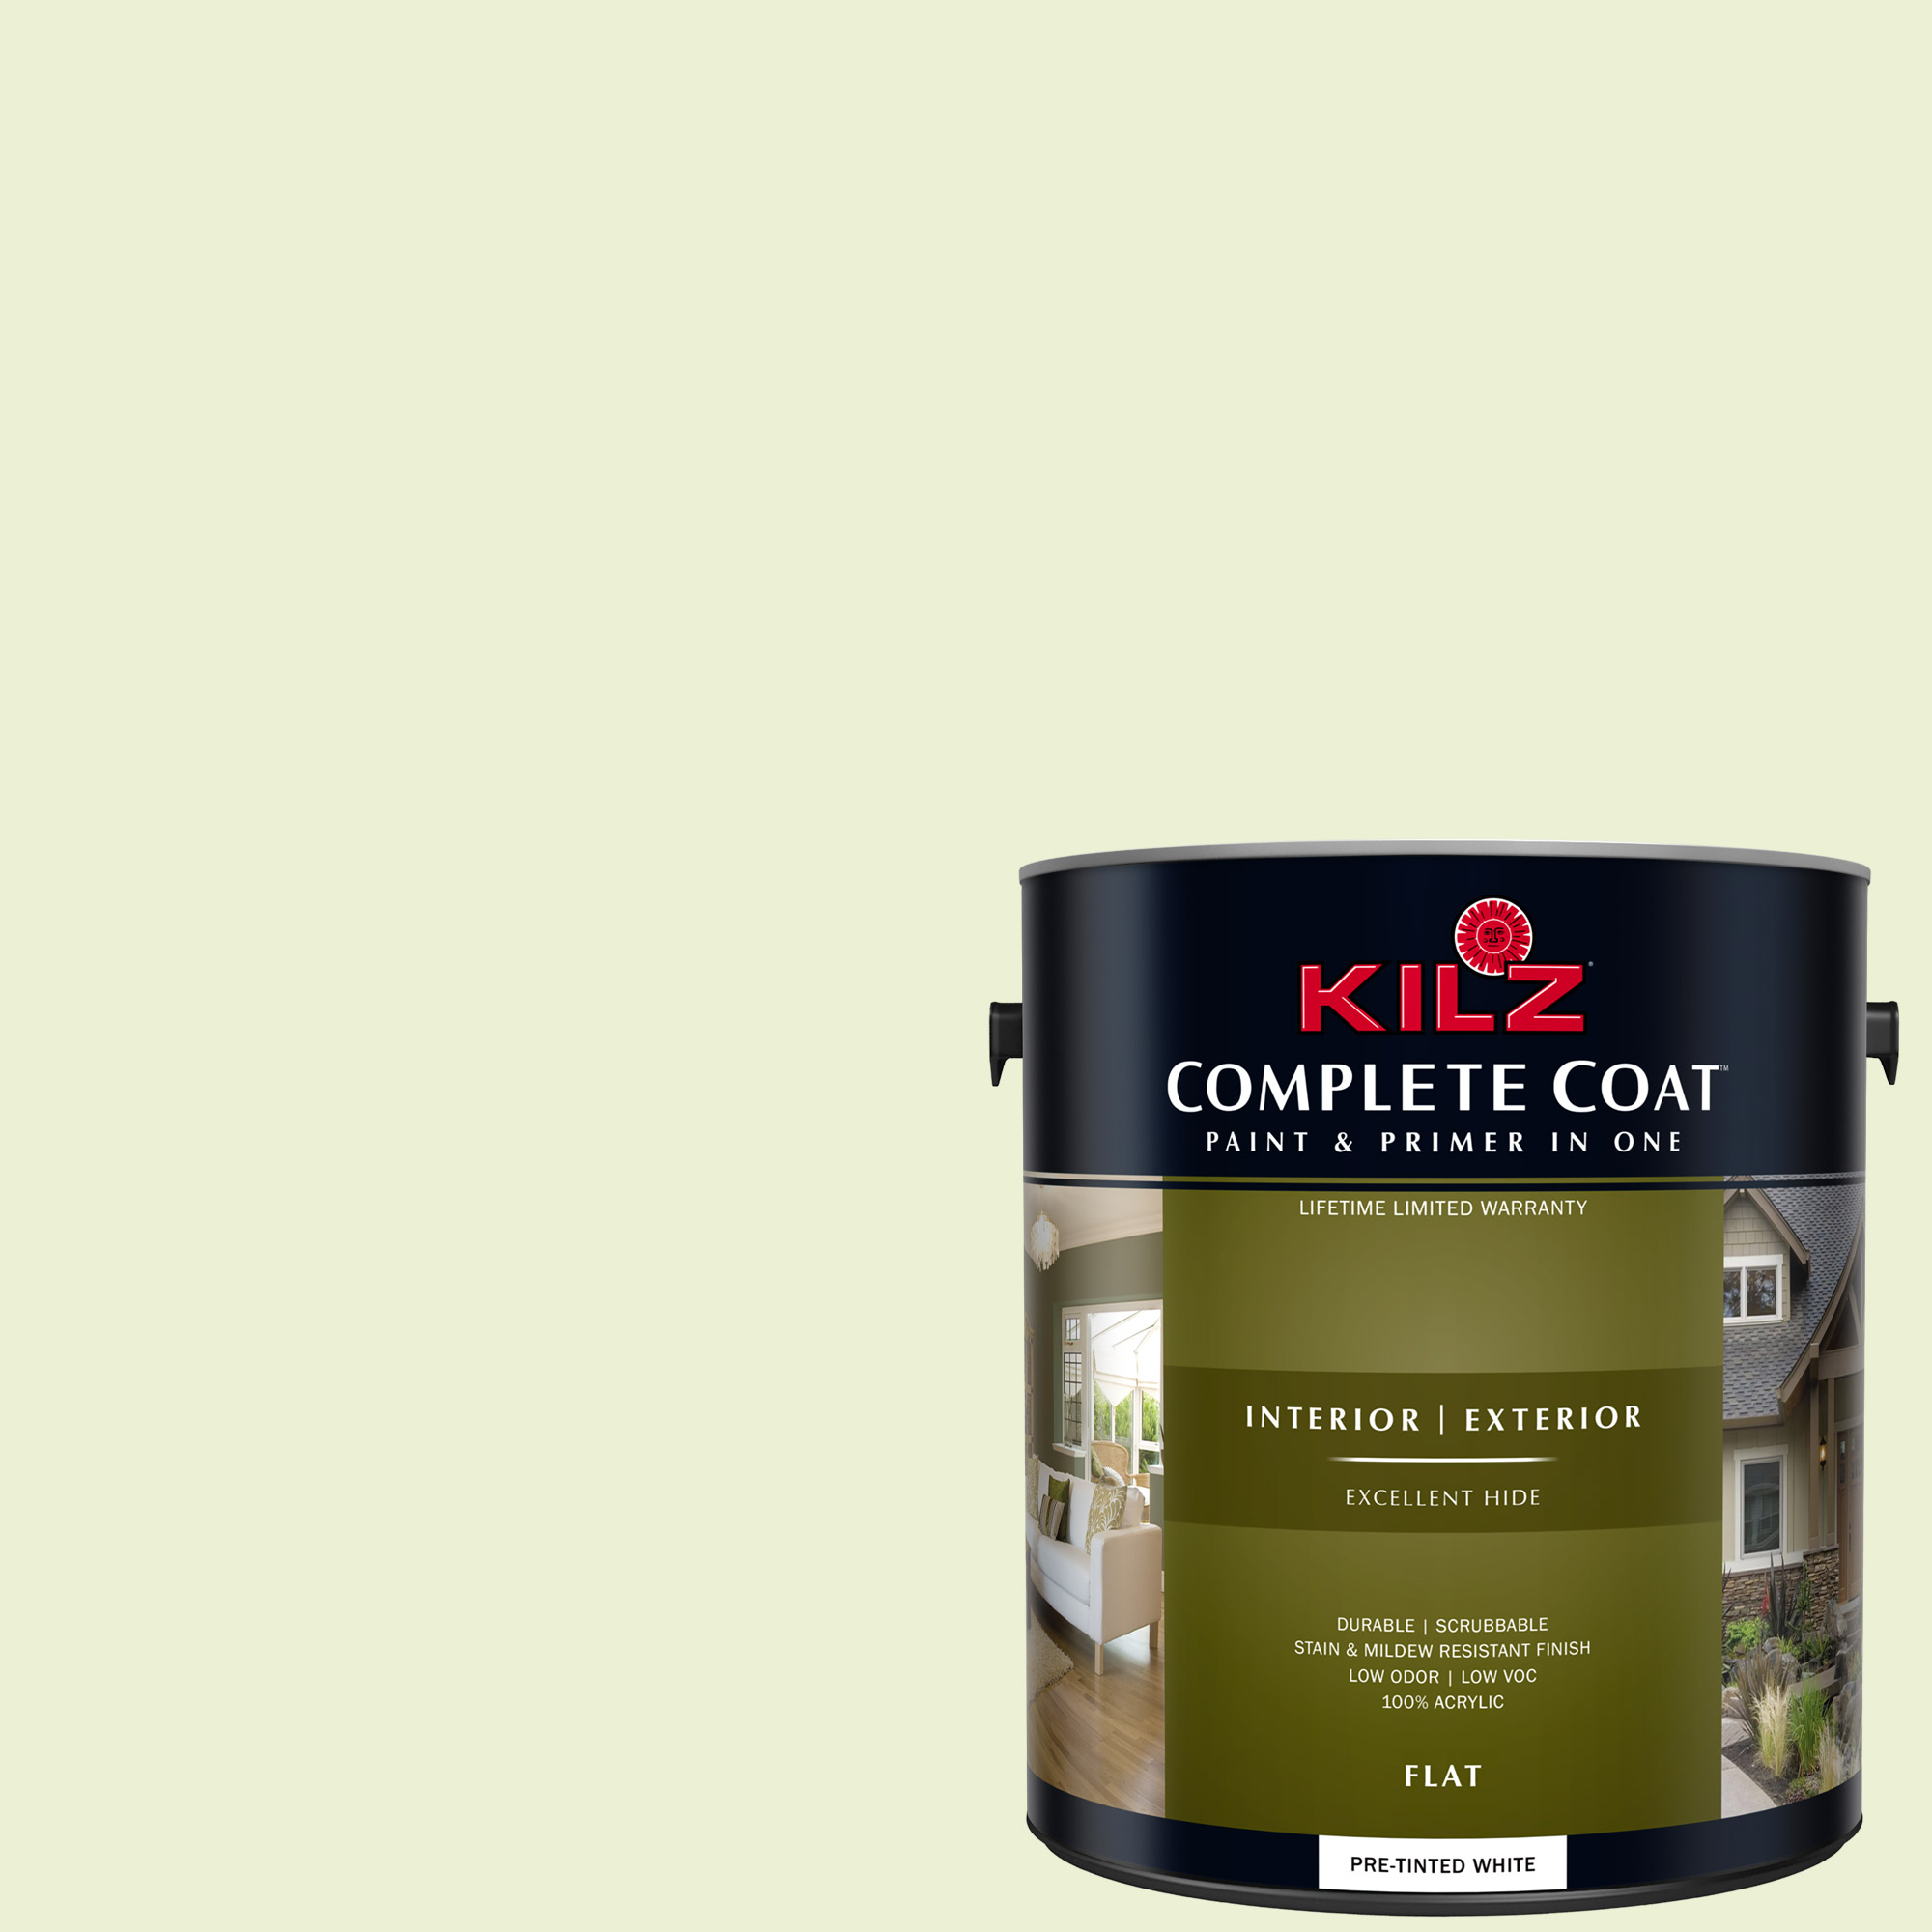 KILZ COMPLETE COAT Interior/Exterior Paint & Primer in One #LG210-01 In Paradise